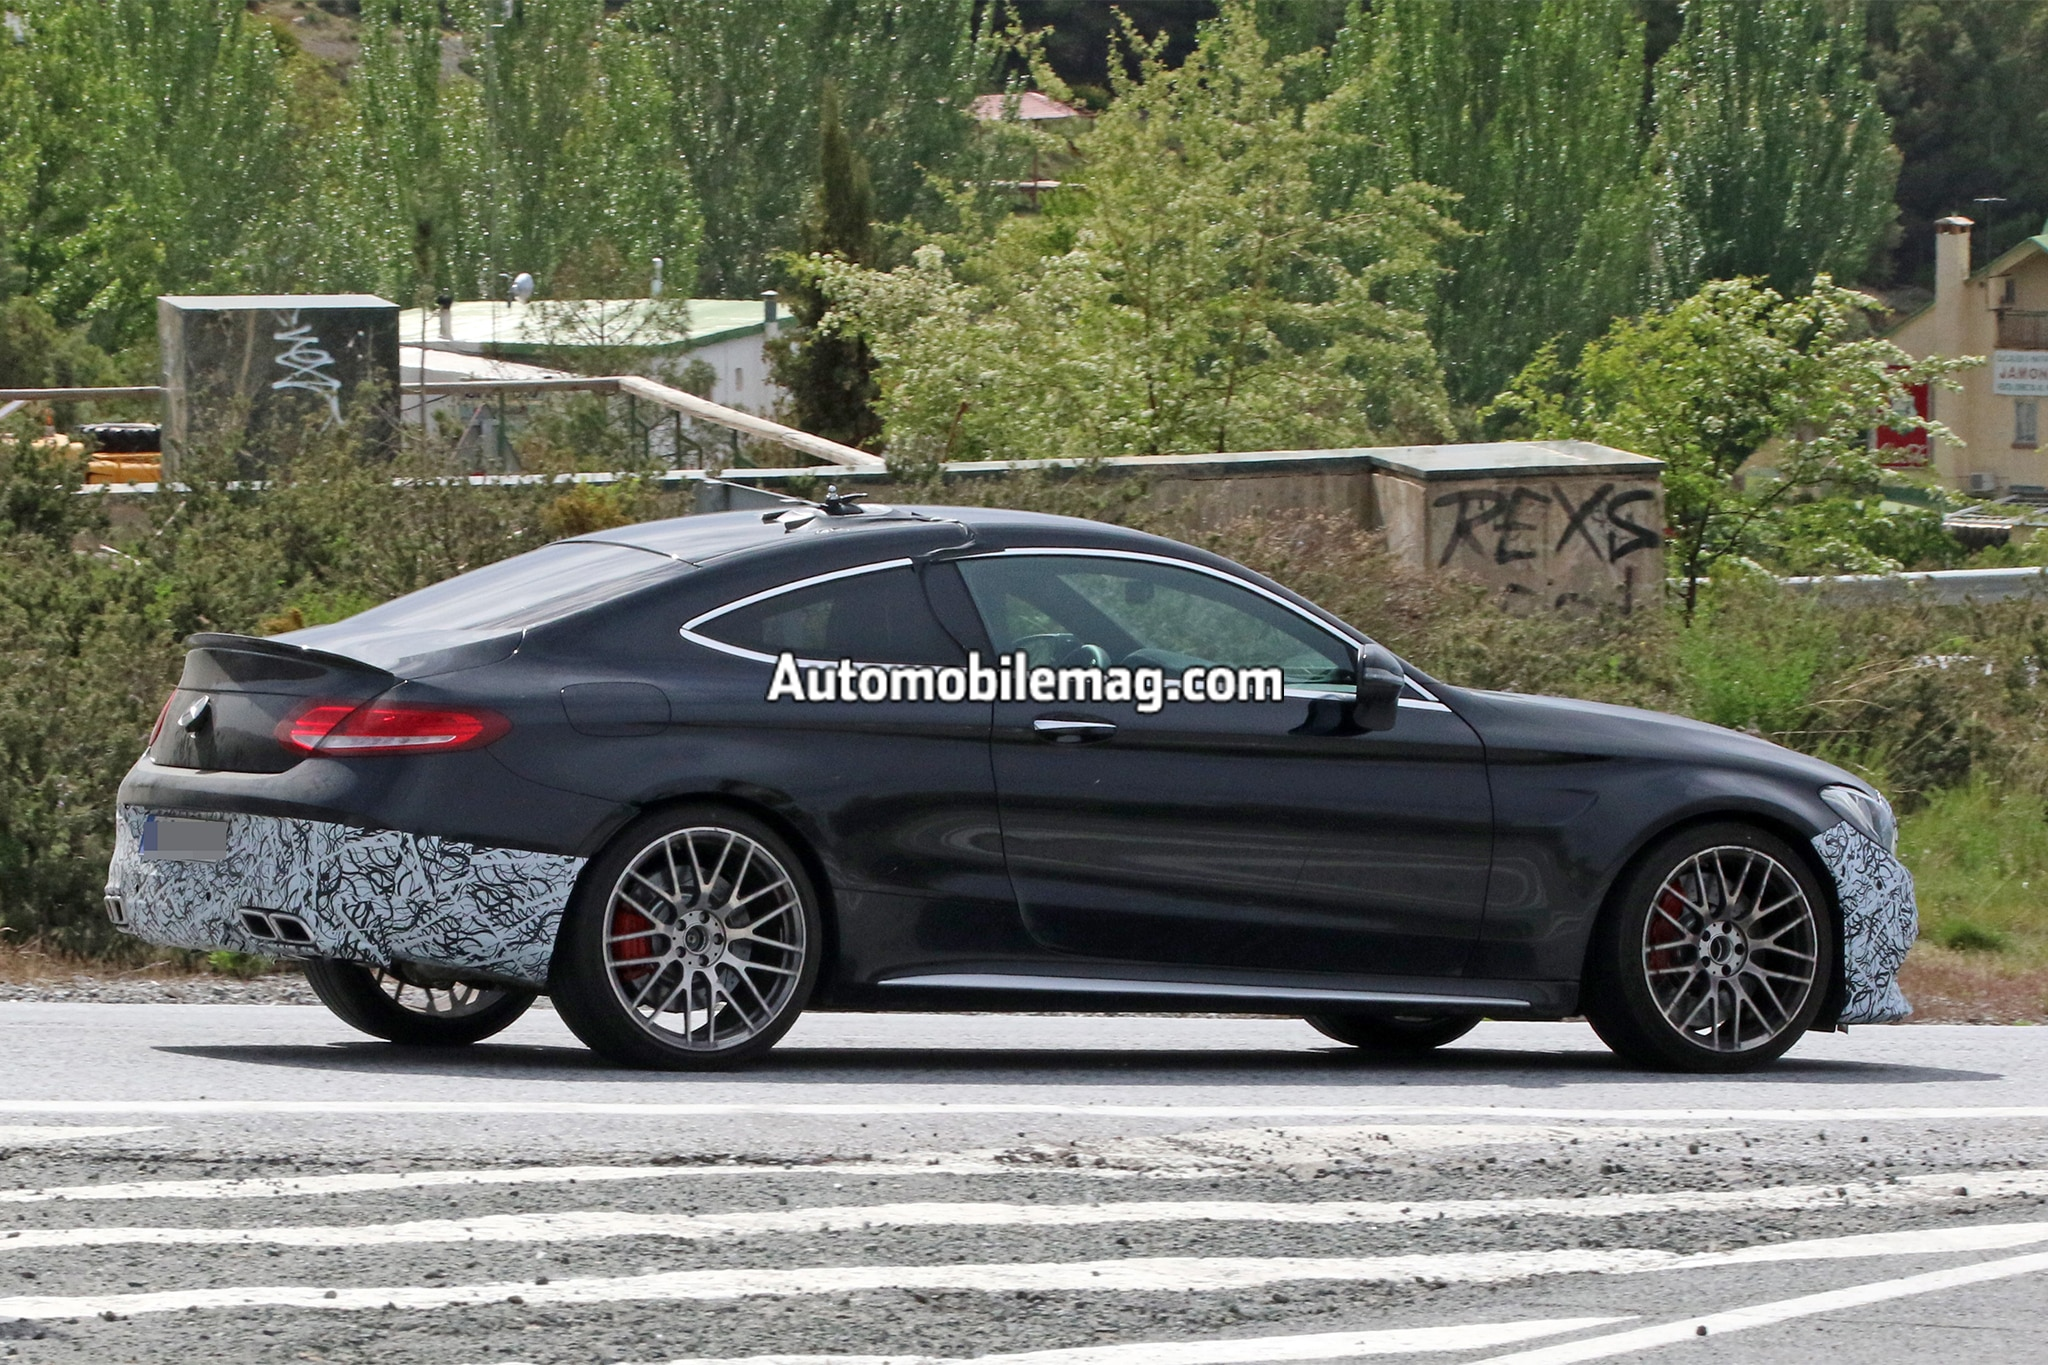 mercedes amg c63 s coupe set to get new nose and rear automobile magazine. Black Bedroom Furniture Sets. Home Design Ideas